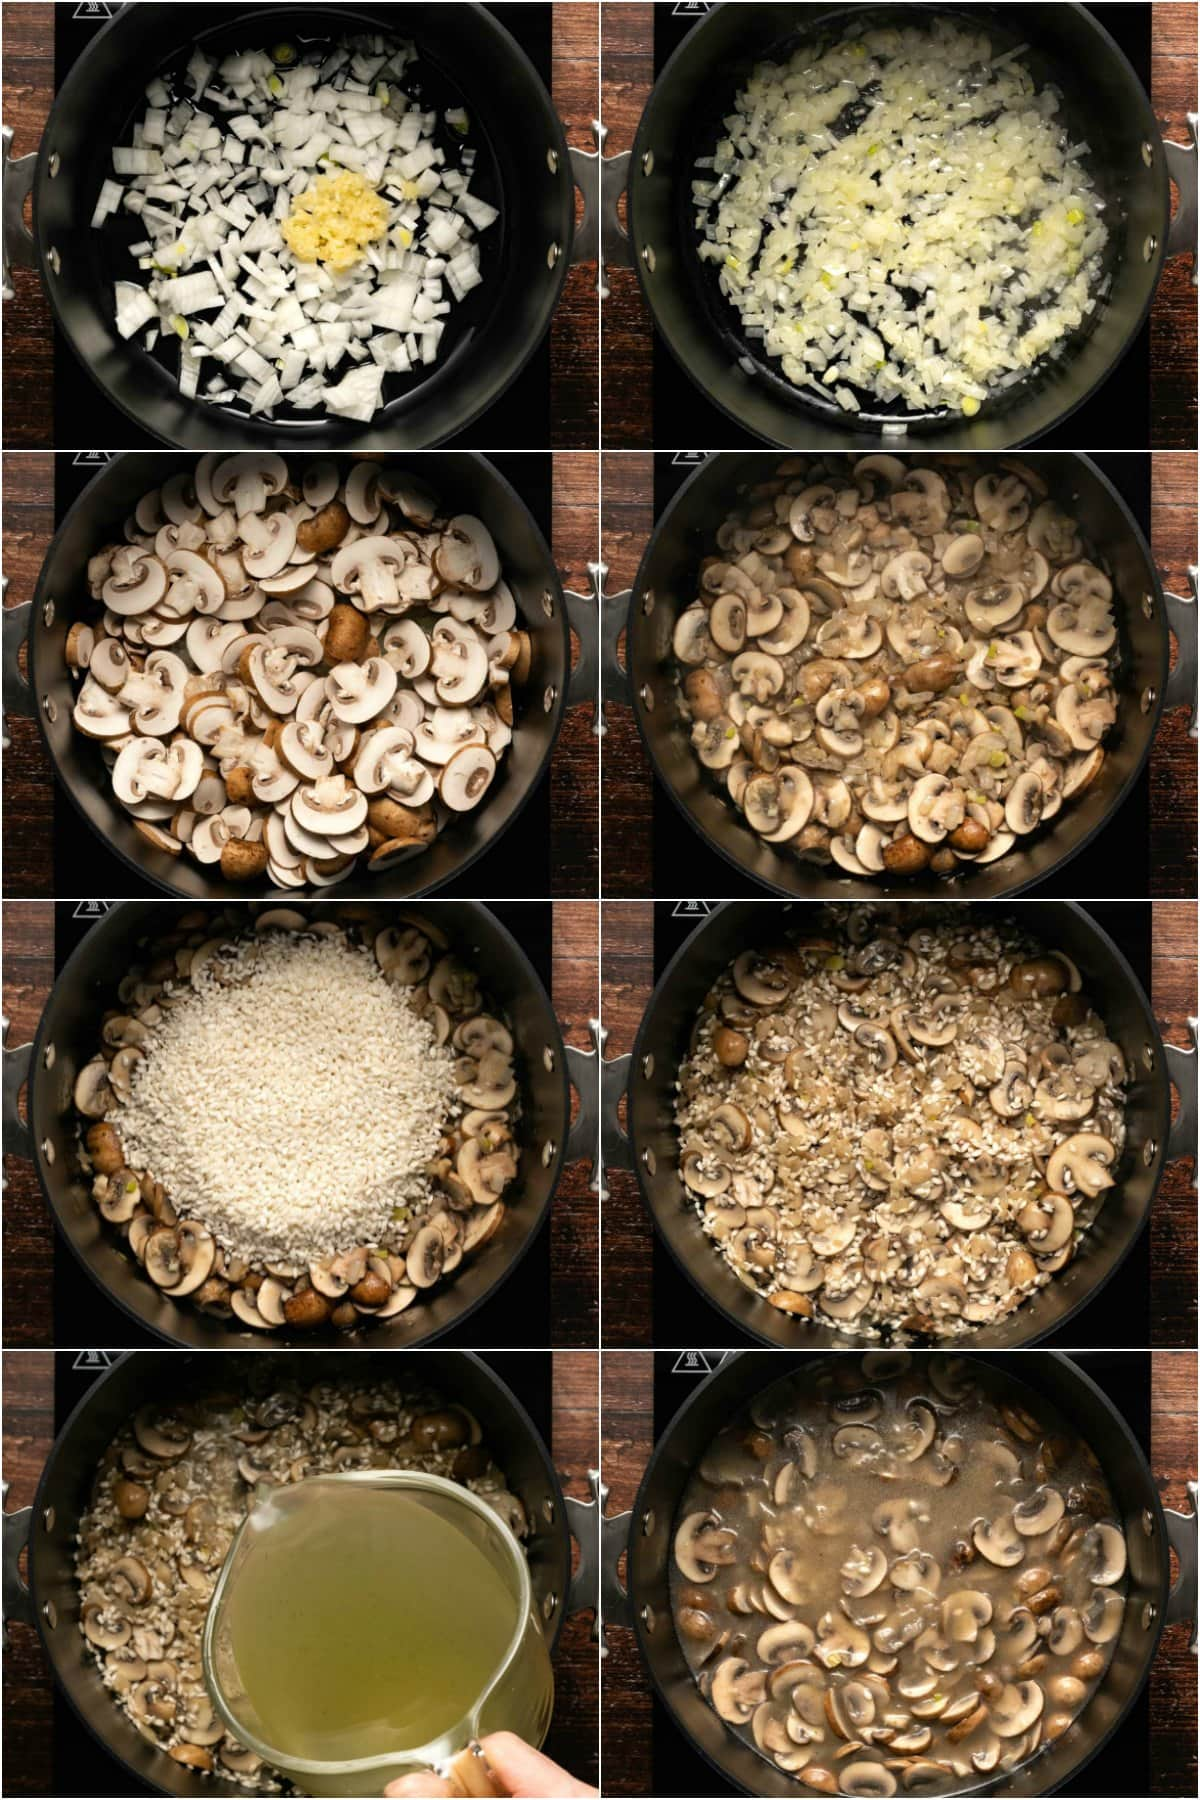 Step by step process photo collage of making mushroom risotto.